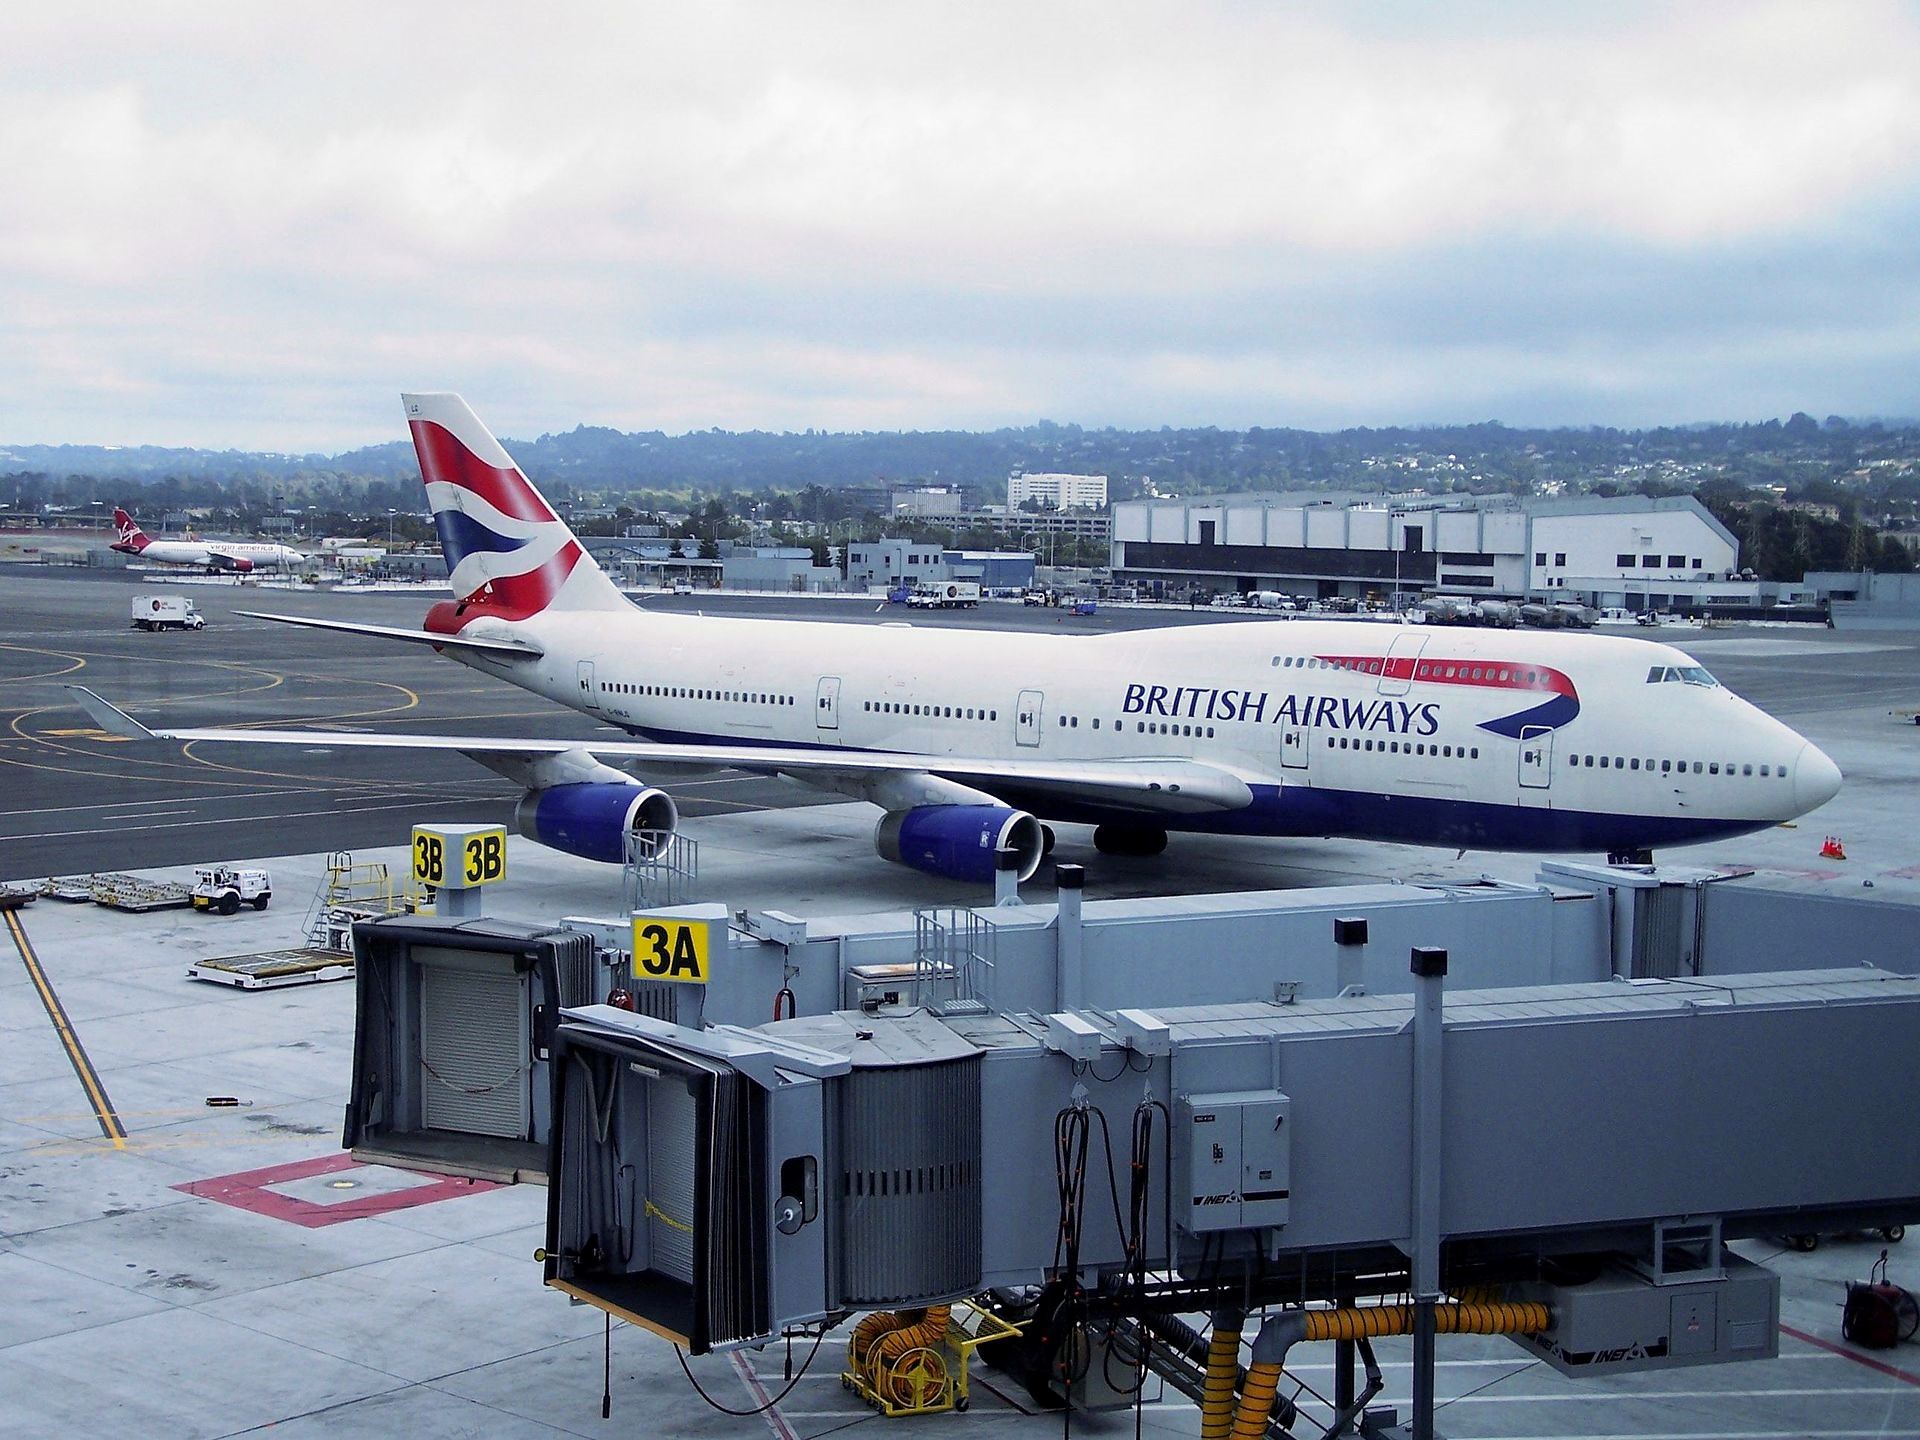 Multa record a British Airways, quali le conseguenze?